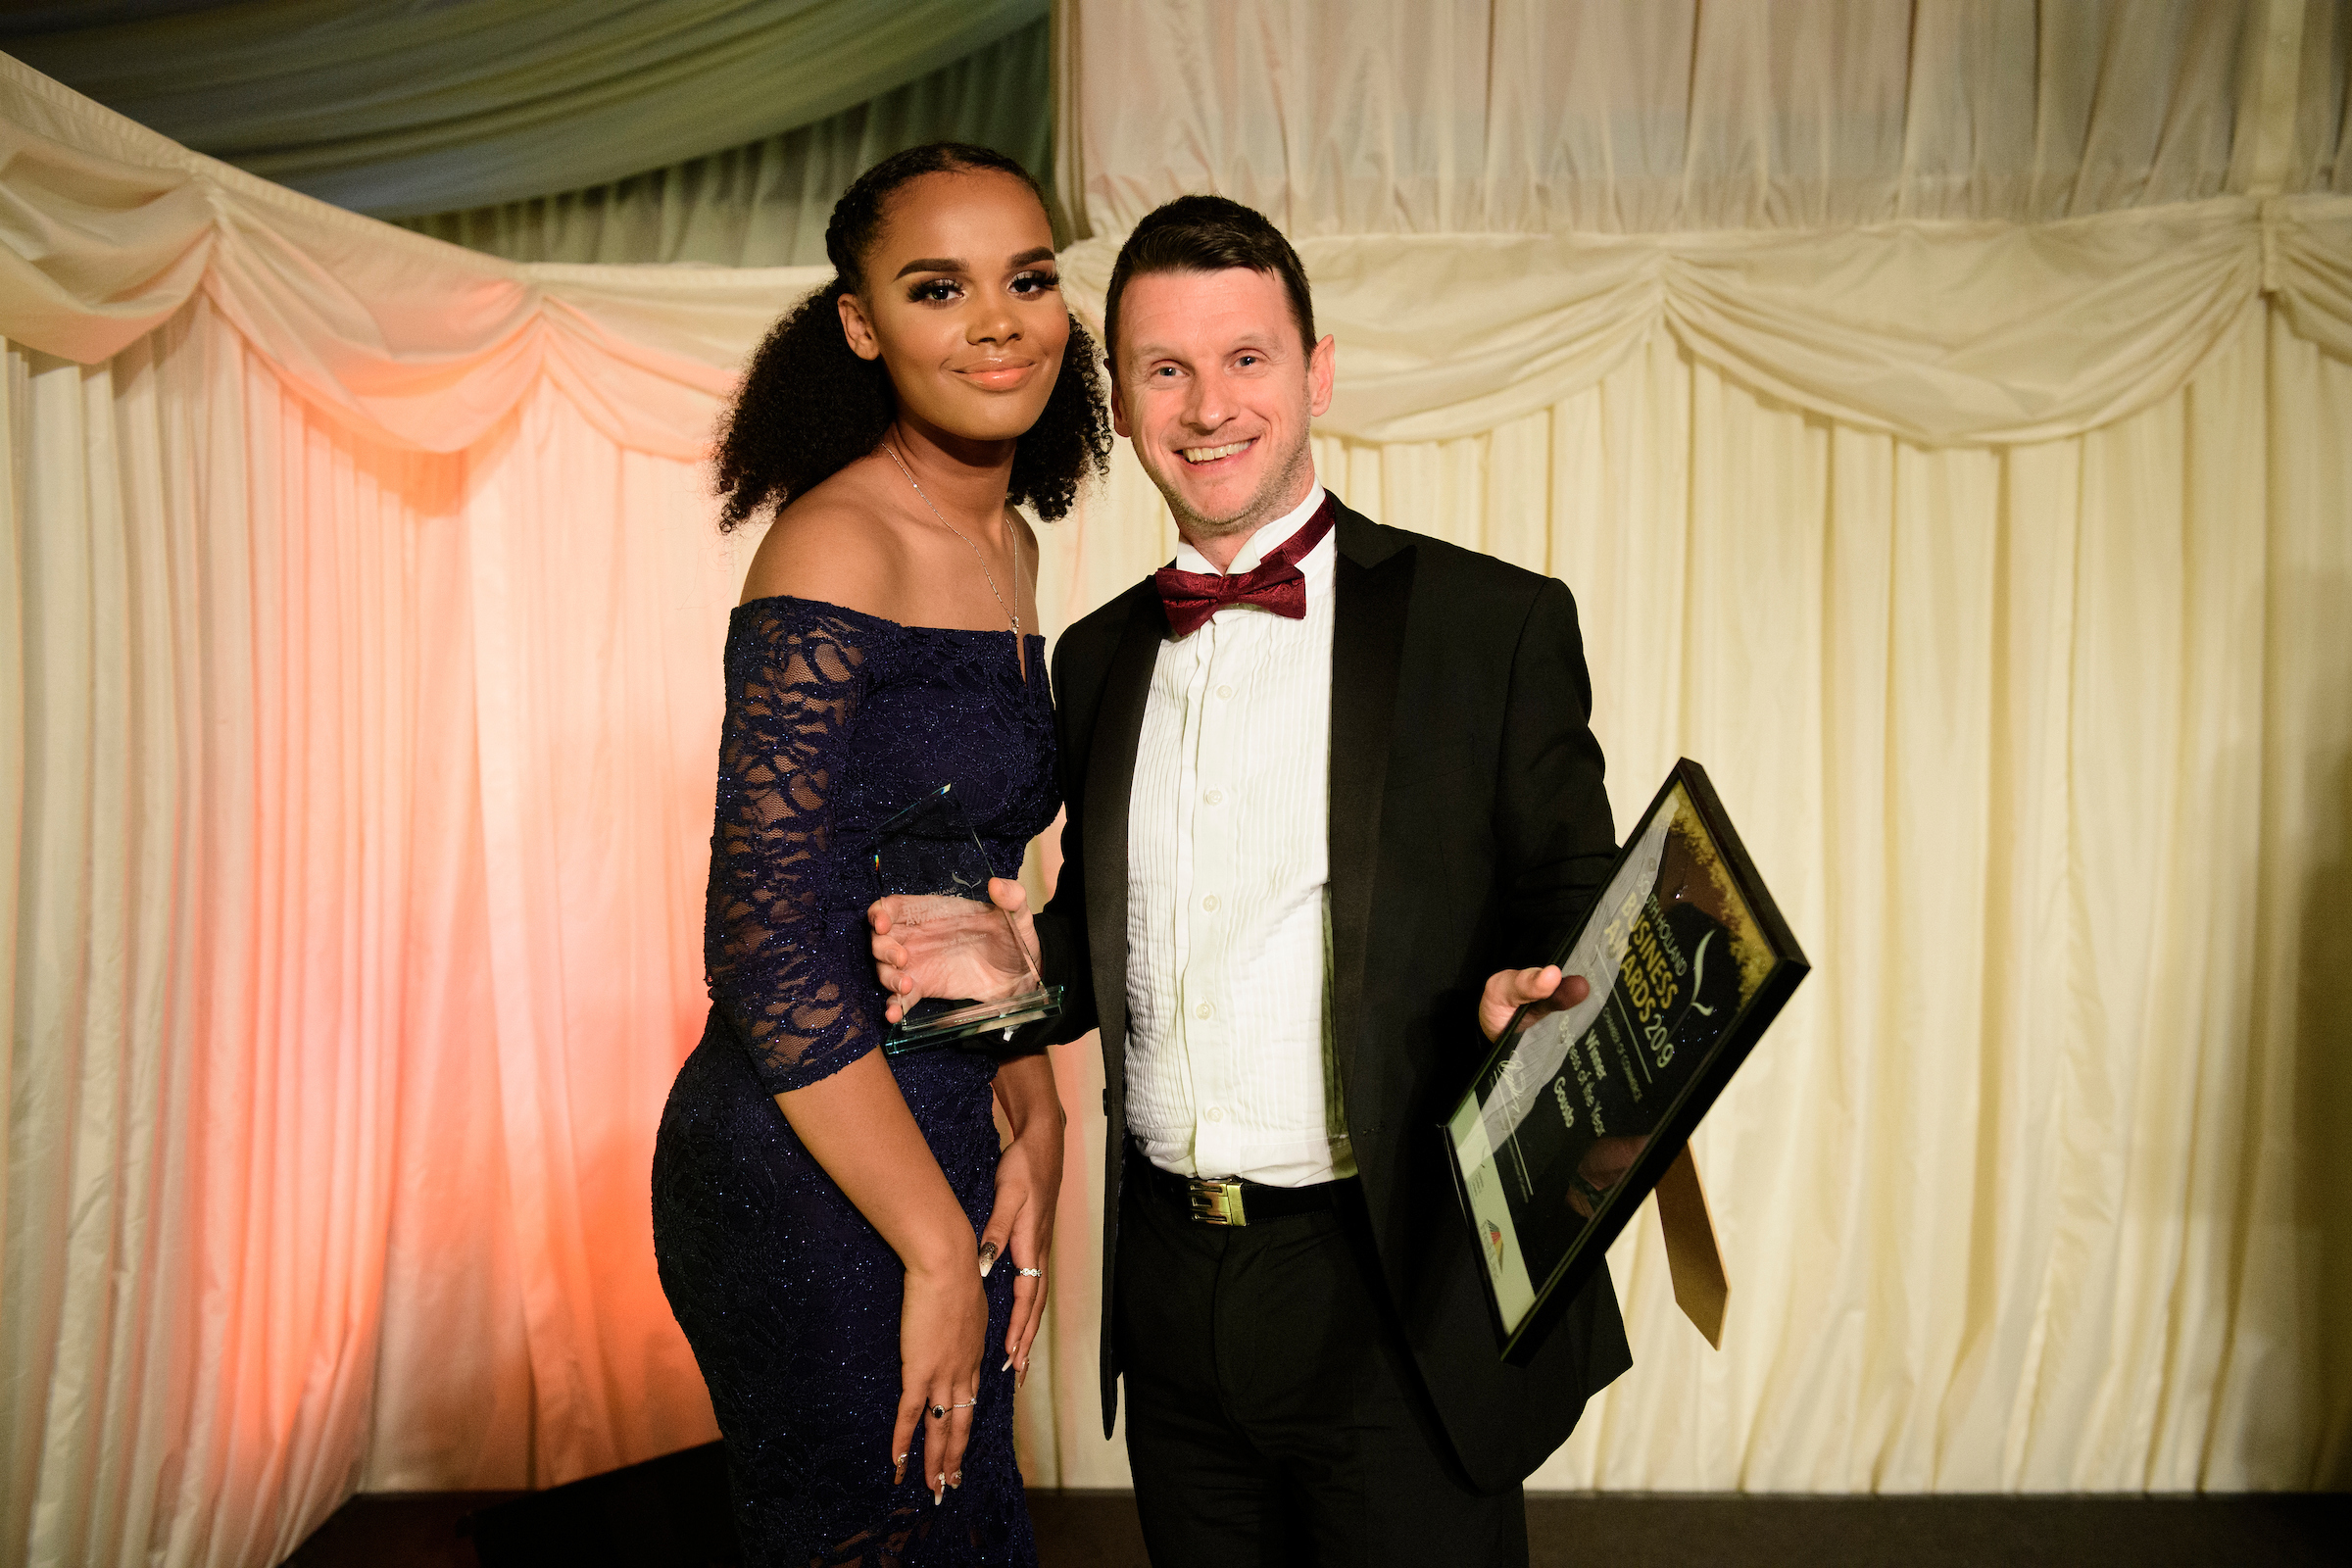 Young woman in off shoulder dress next to man in suit and bowtie, holding trophy and certificate at the South Holland Business Awards 2019